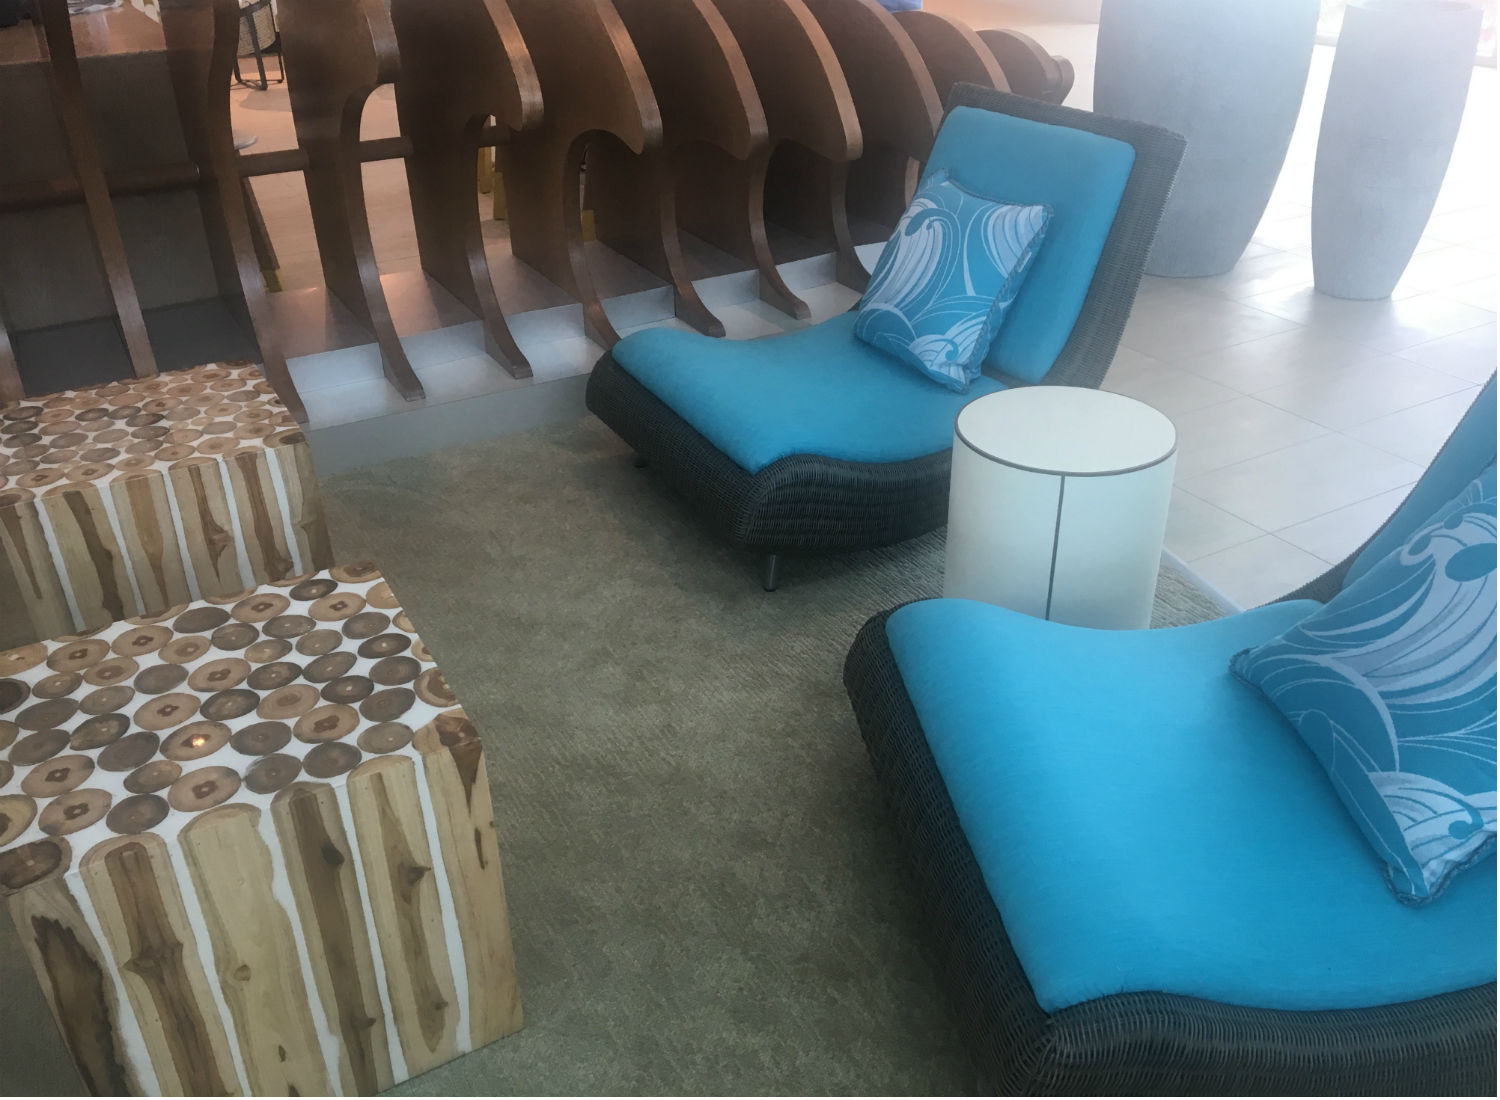 In keeping with the theme, lobby seating is white and bright blue.